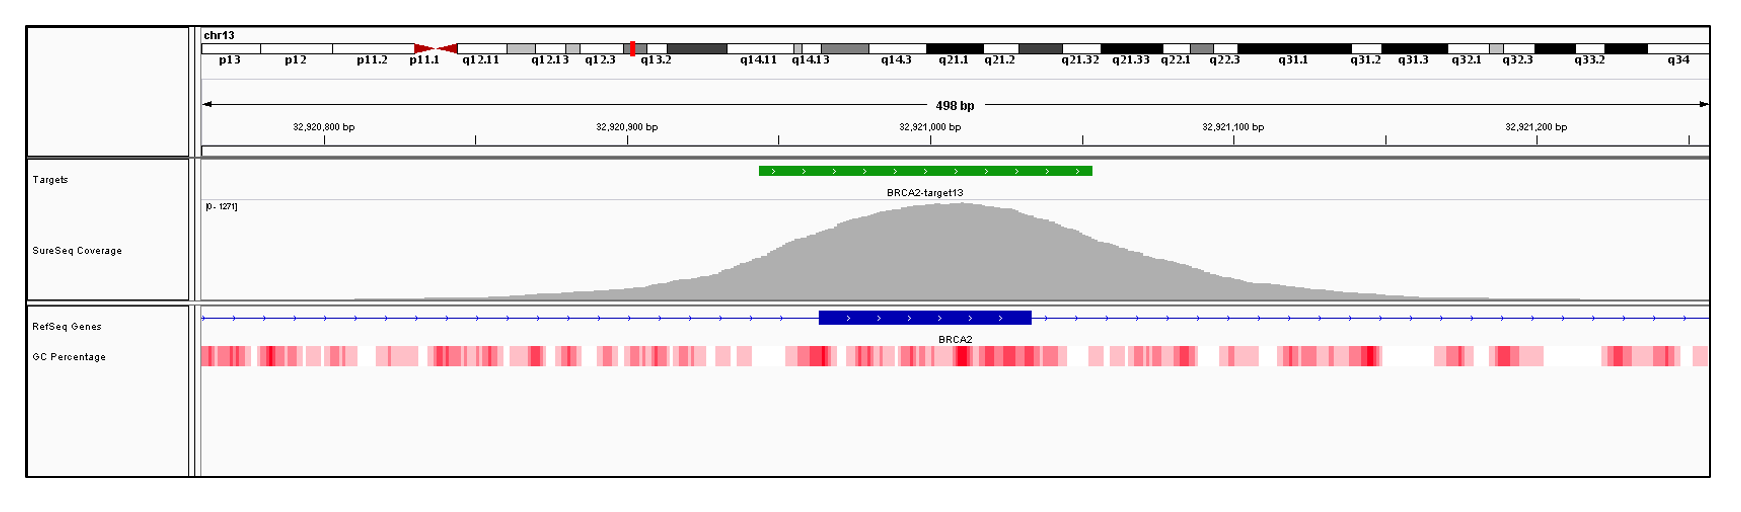 BRCA2 Exon 13 (hg19 chr13:32920964-32921033). Depth of coverage per base (grey). Targeted region (green). Gene coding region as defined by RefSeq (blue). GC percentage (red). Image